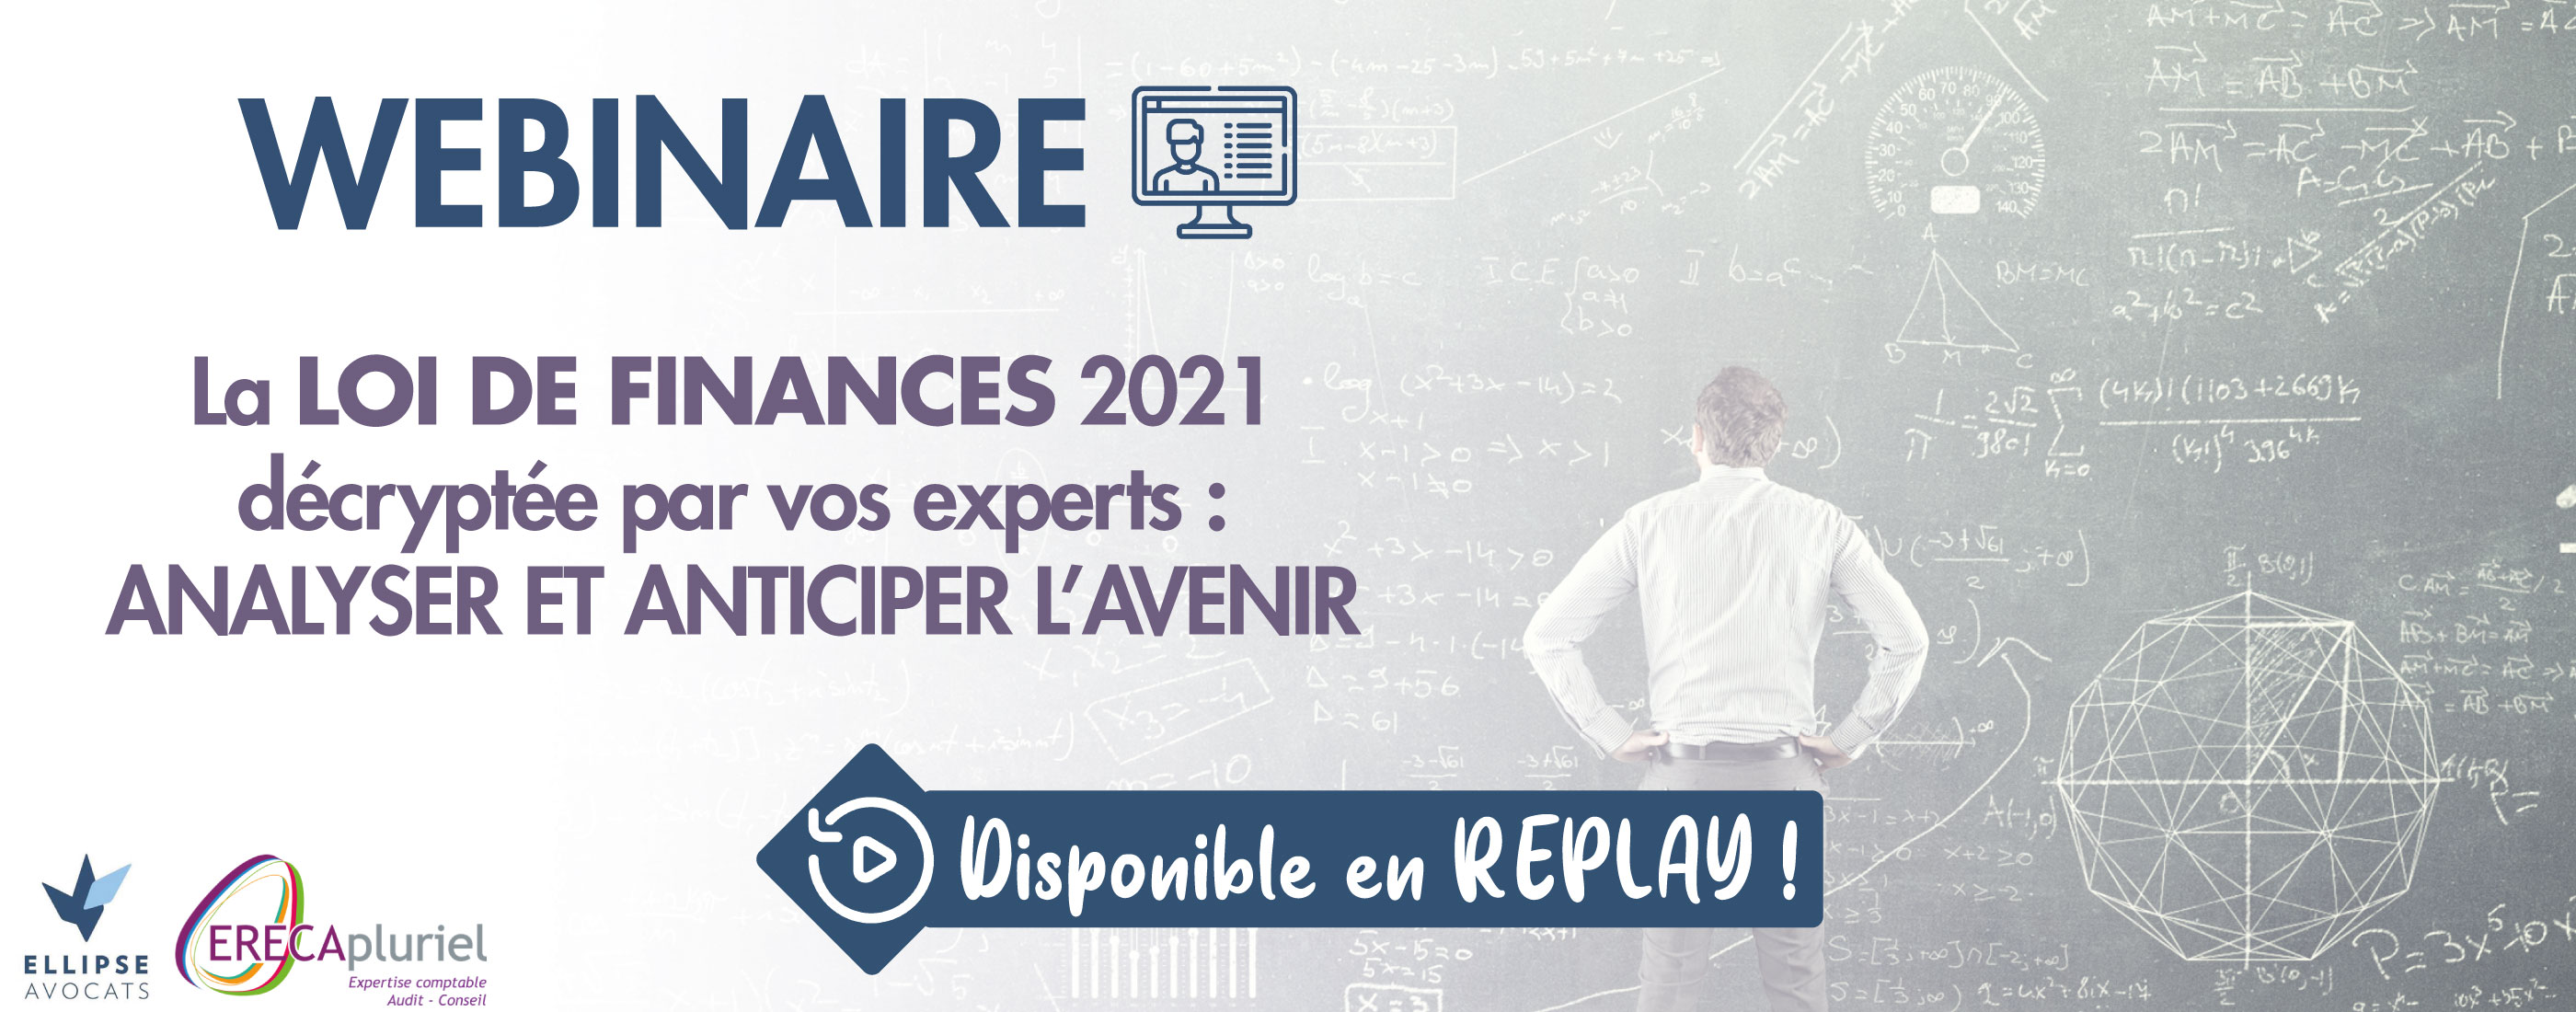 REPLAY Webinaire – La Loi de Finances 2021 décryptée par vos experts : Analyser et anticiper l'avenir